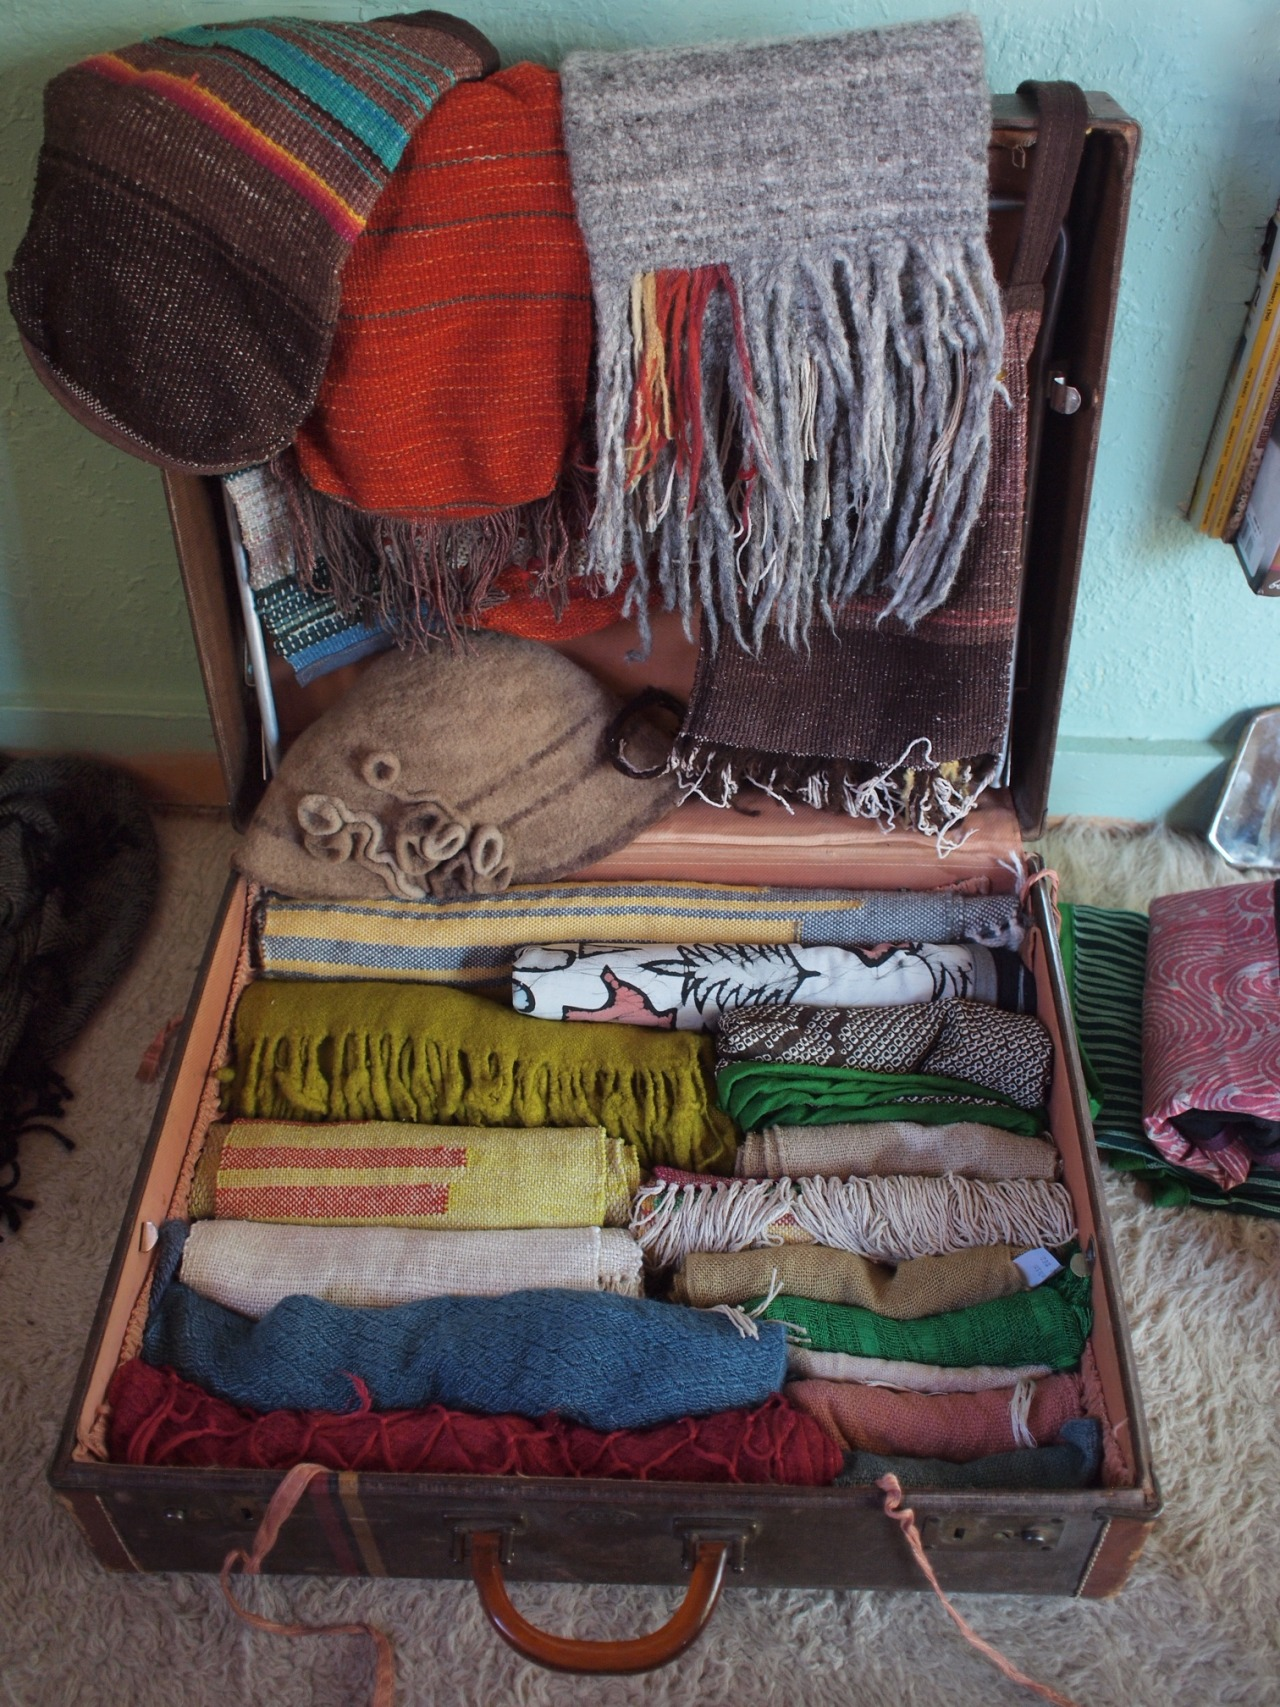 Getting all the scarves, shawls, cowls, bags….packed up for CA